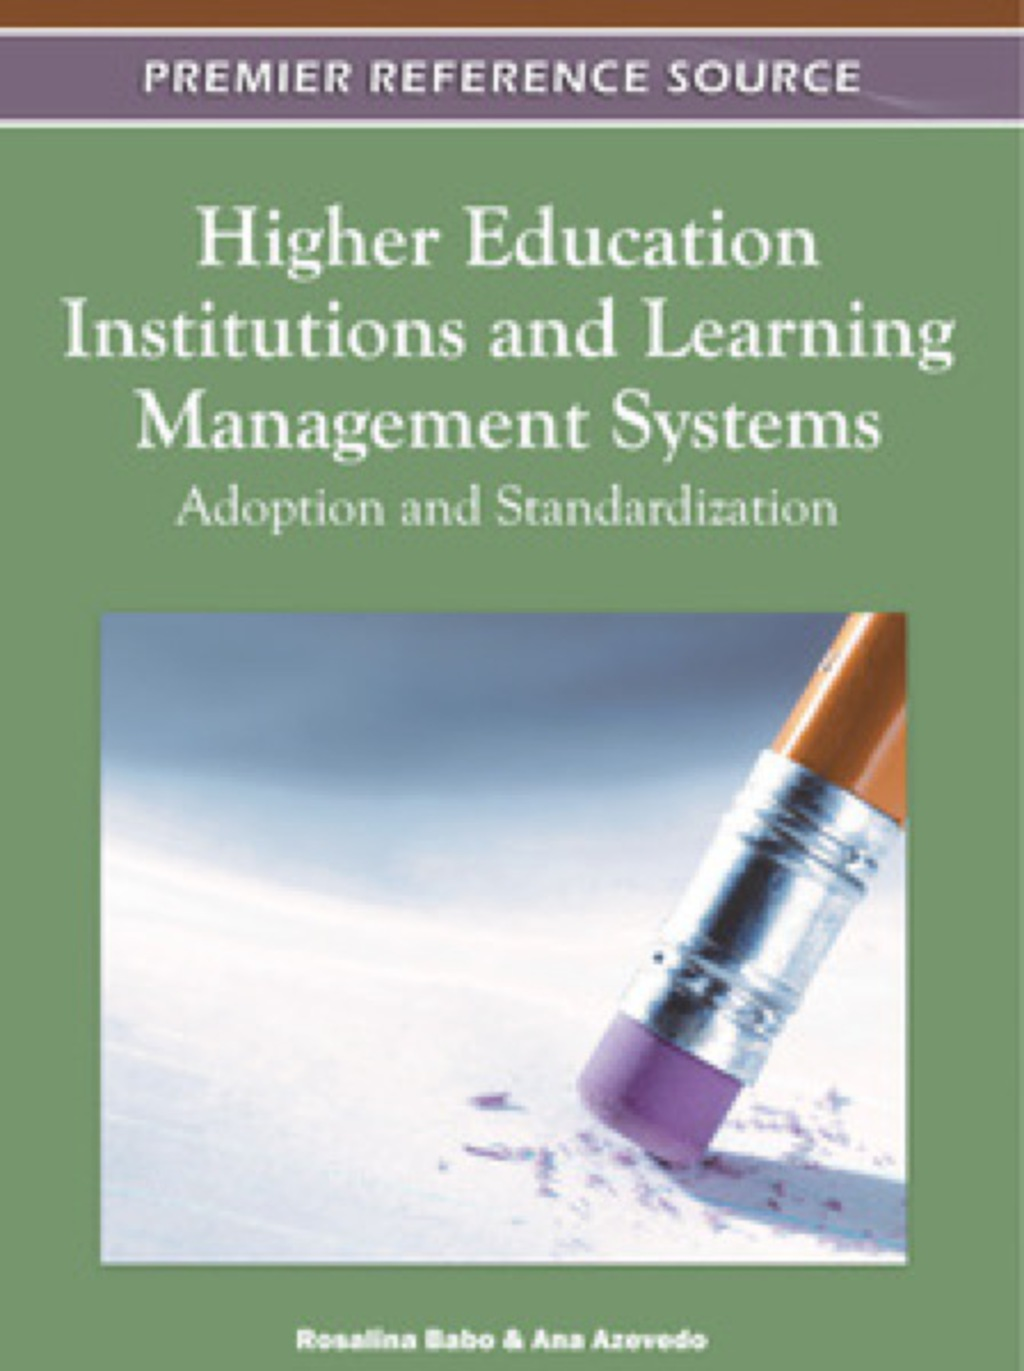 Higher Education Institutions and Learning Management Systems (ebook) eBooks